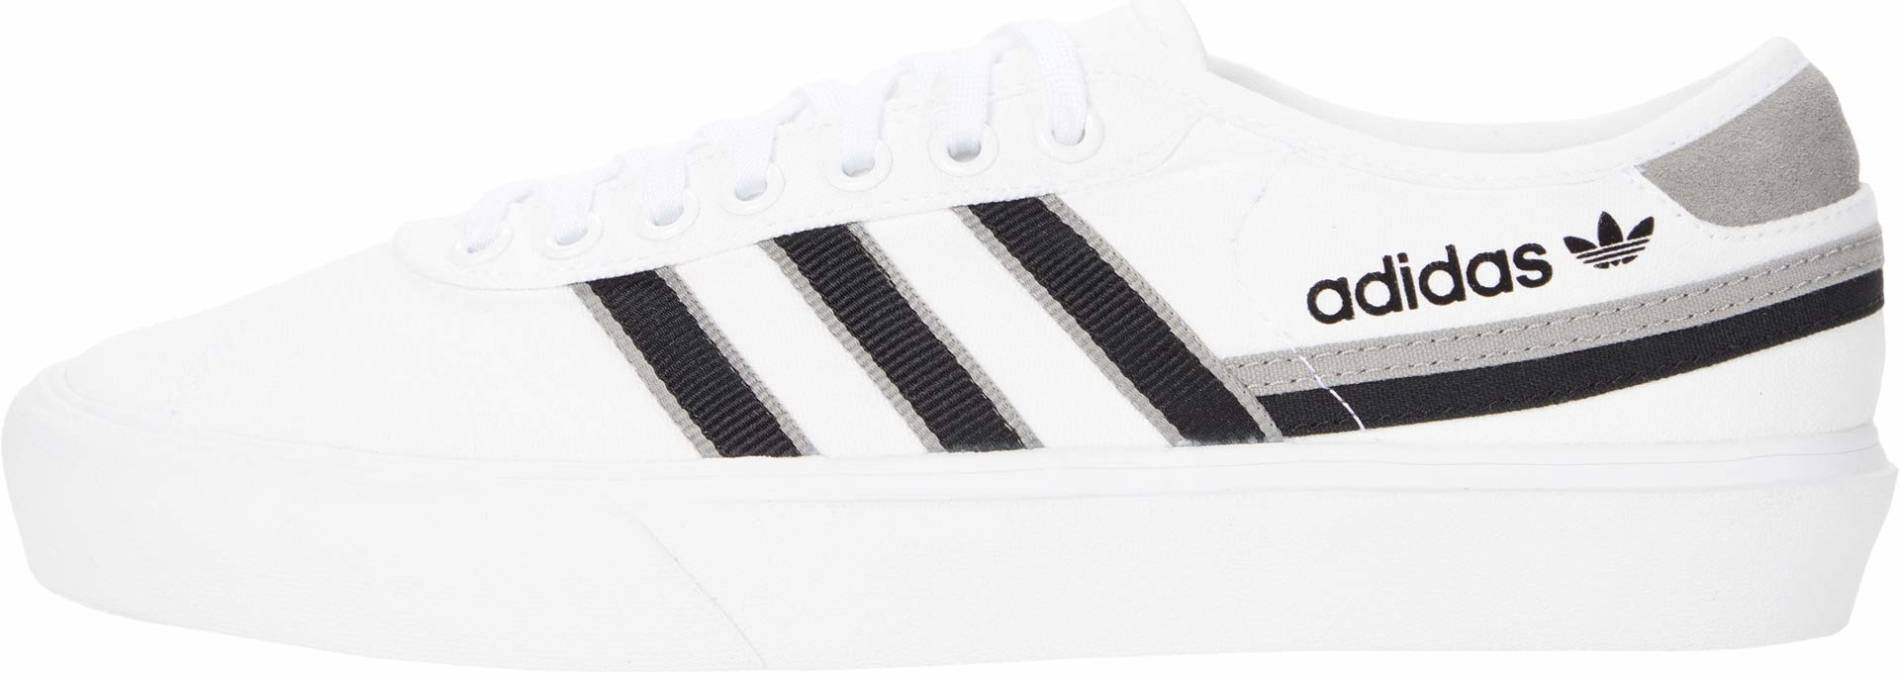 Adidas Delpala sneakers in 4 colors (only £39) | RunRepeat